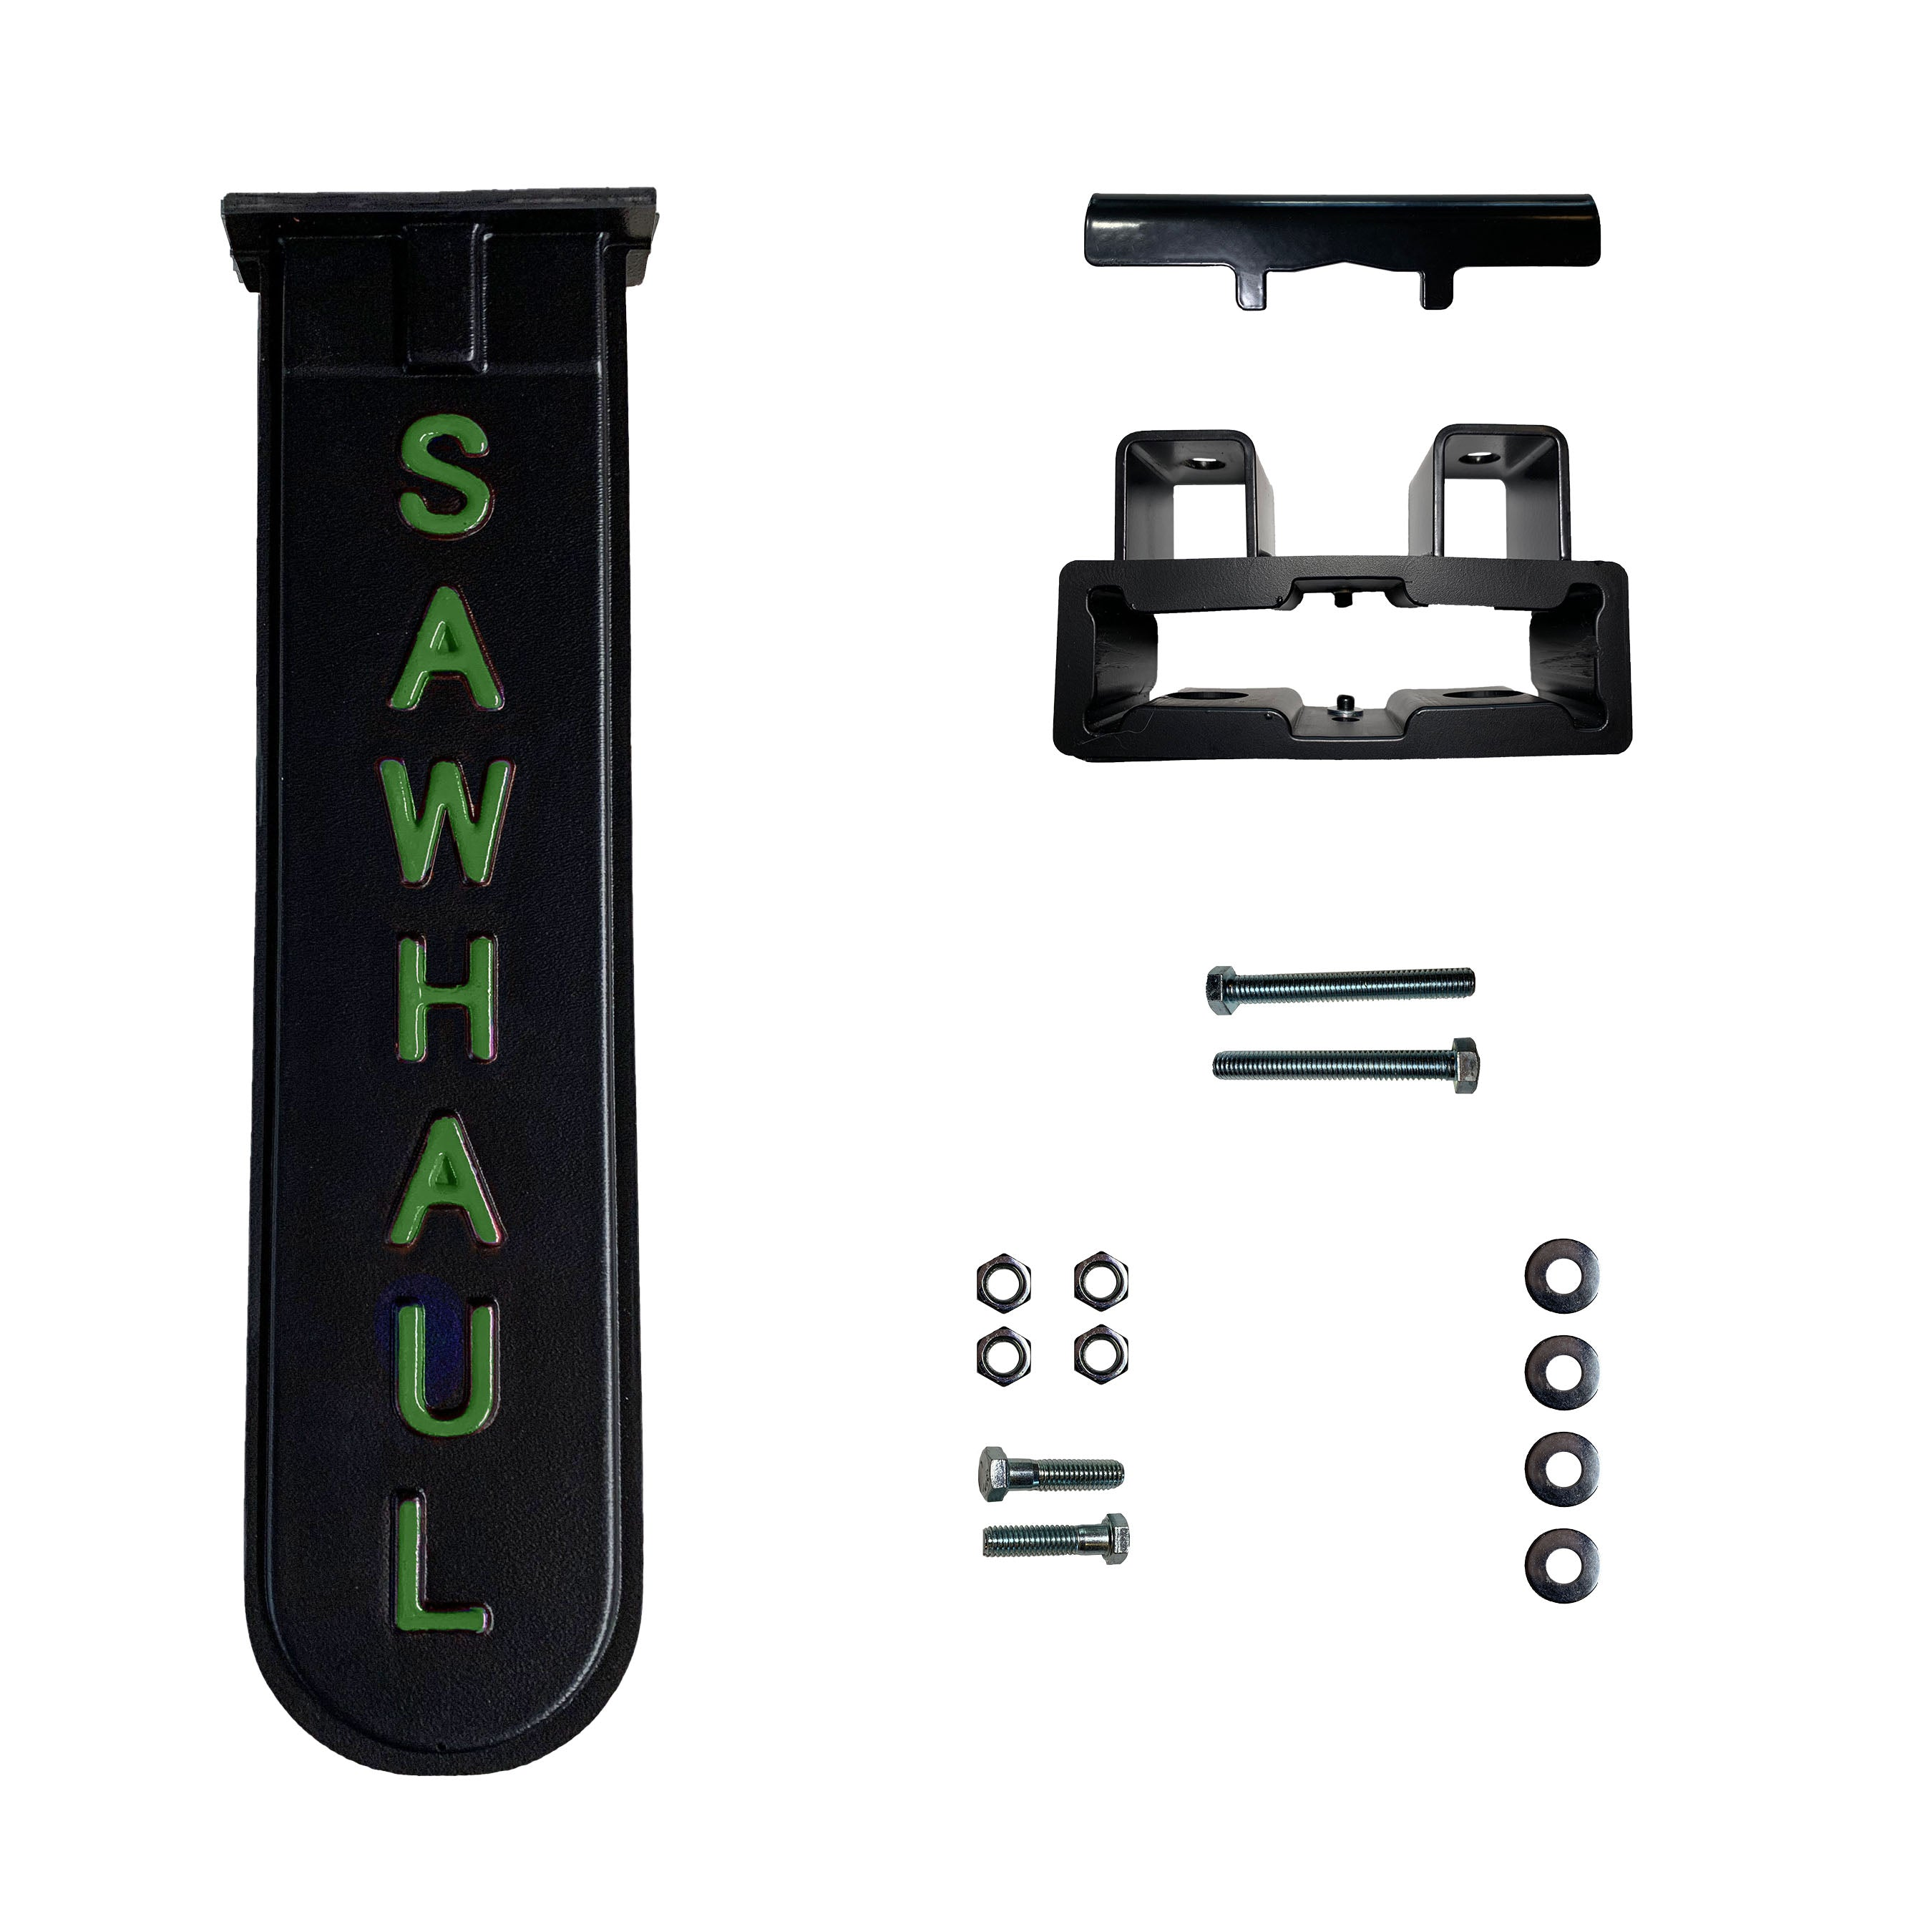 SawHaul Complete Kit for ROPS & Man Lifts